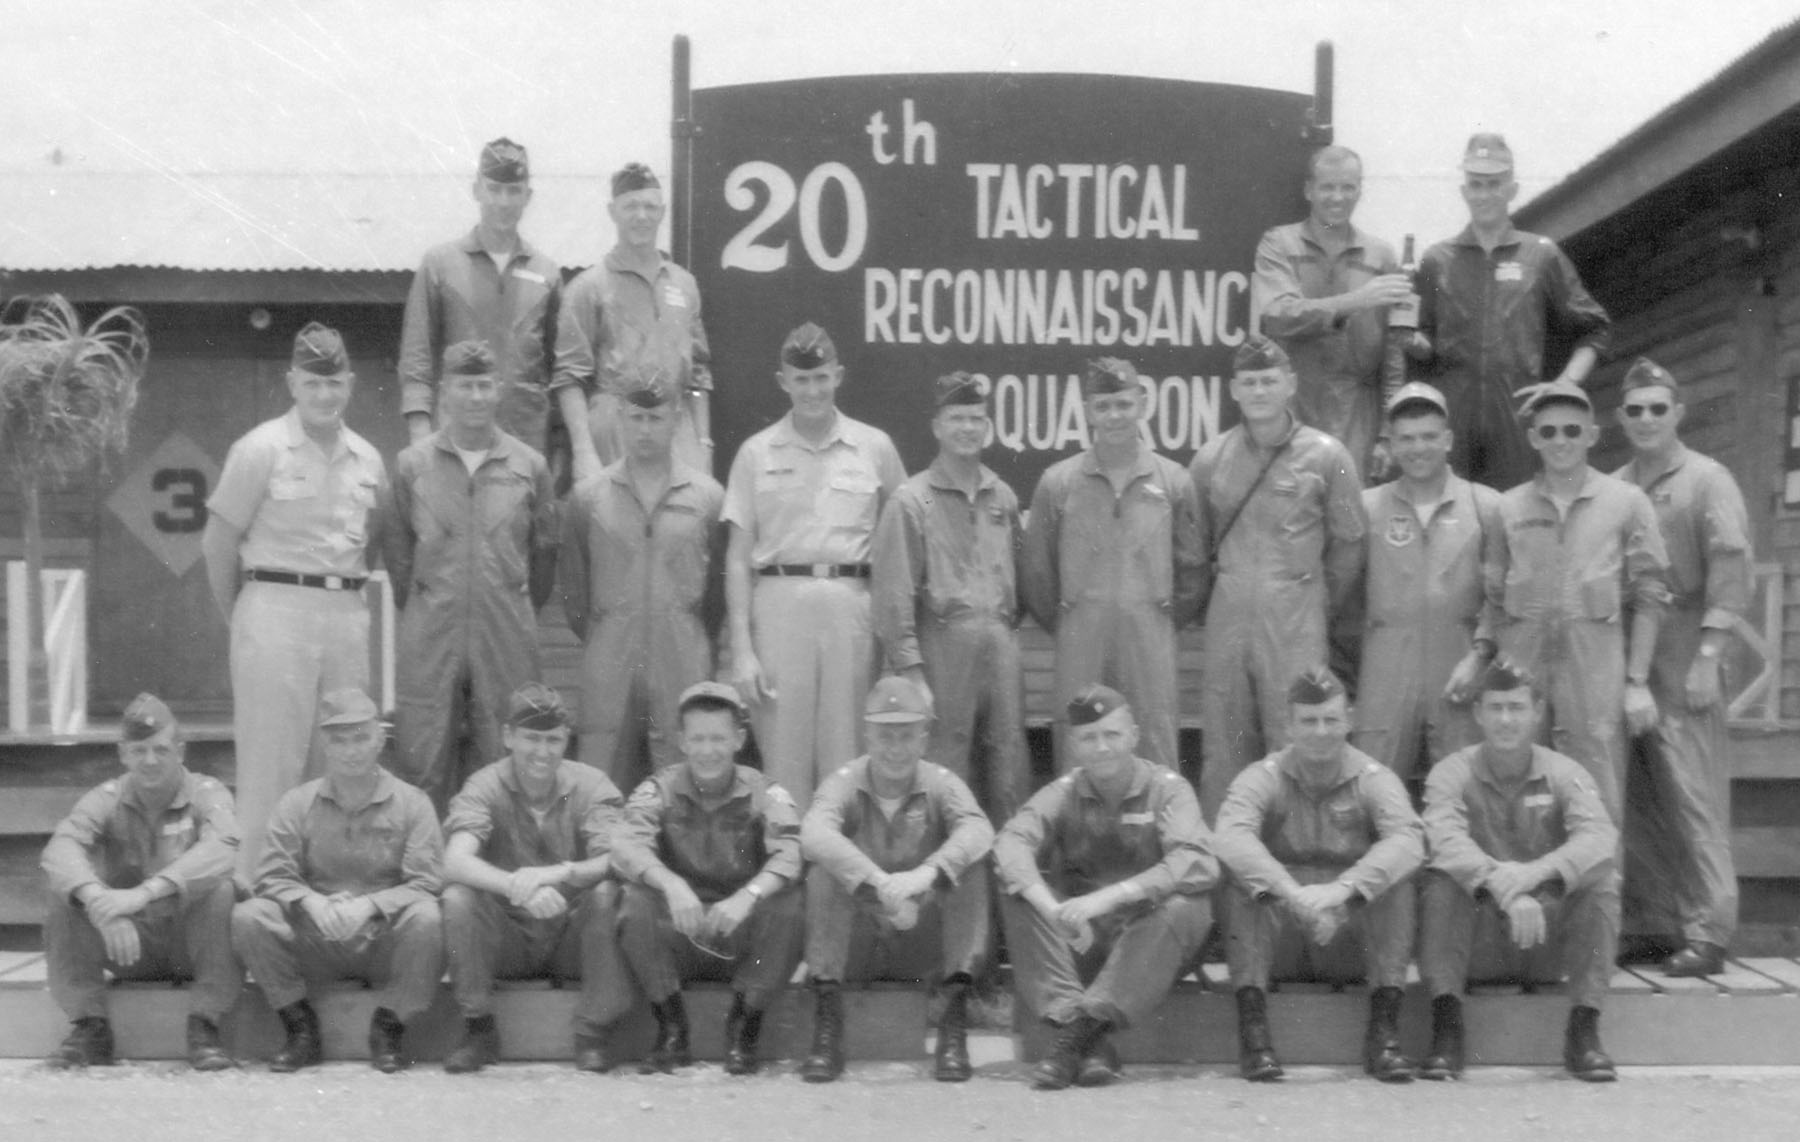 20th Tactical Reconnaissance Squadron Honor Roll > National Museum